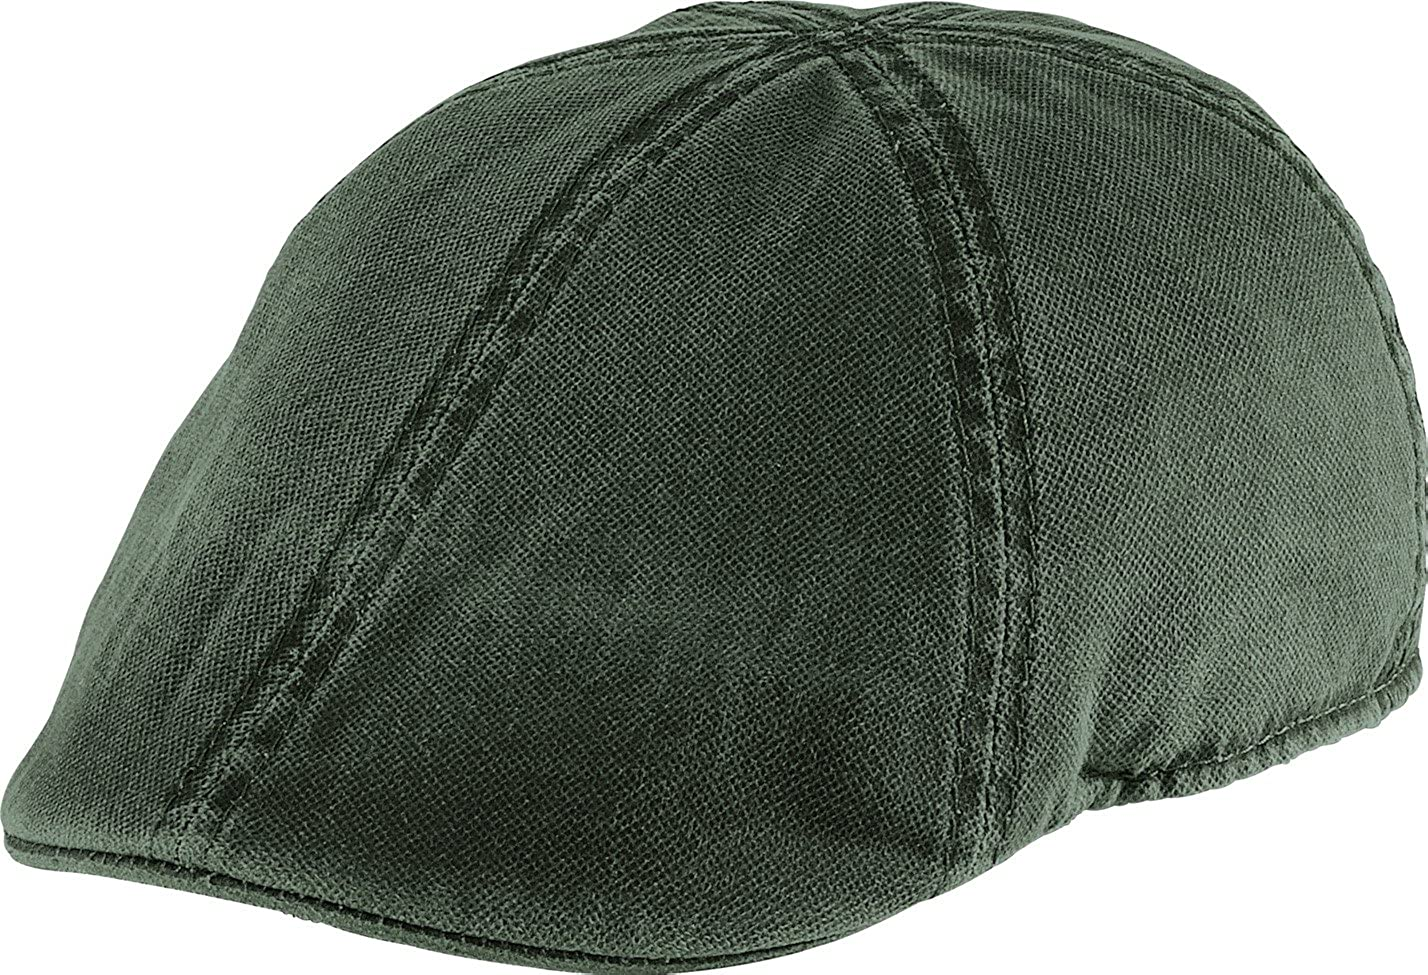 b0f608e271d8 Amazon.com: Henschel Distressed Duckbill Ivy Scally Cap Olive Washed Cotton  6/4 Hat 6302: Clothing